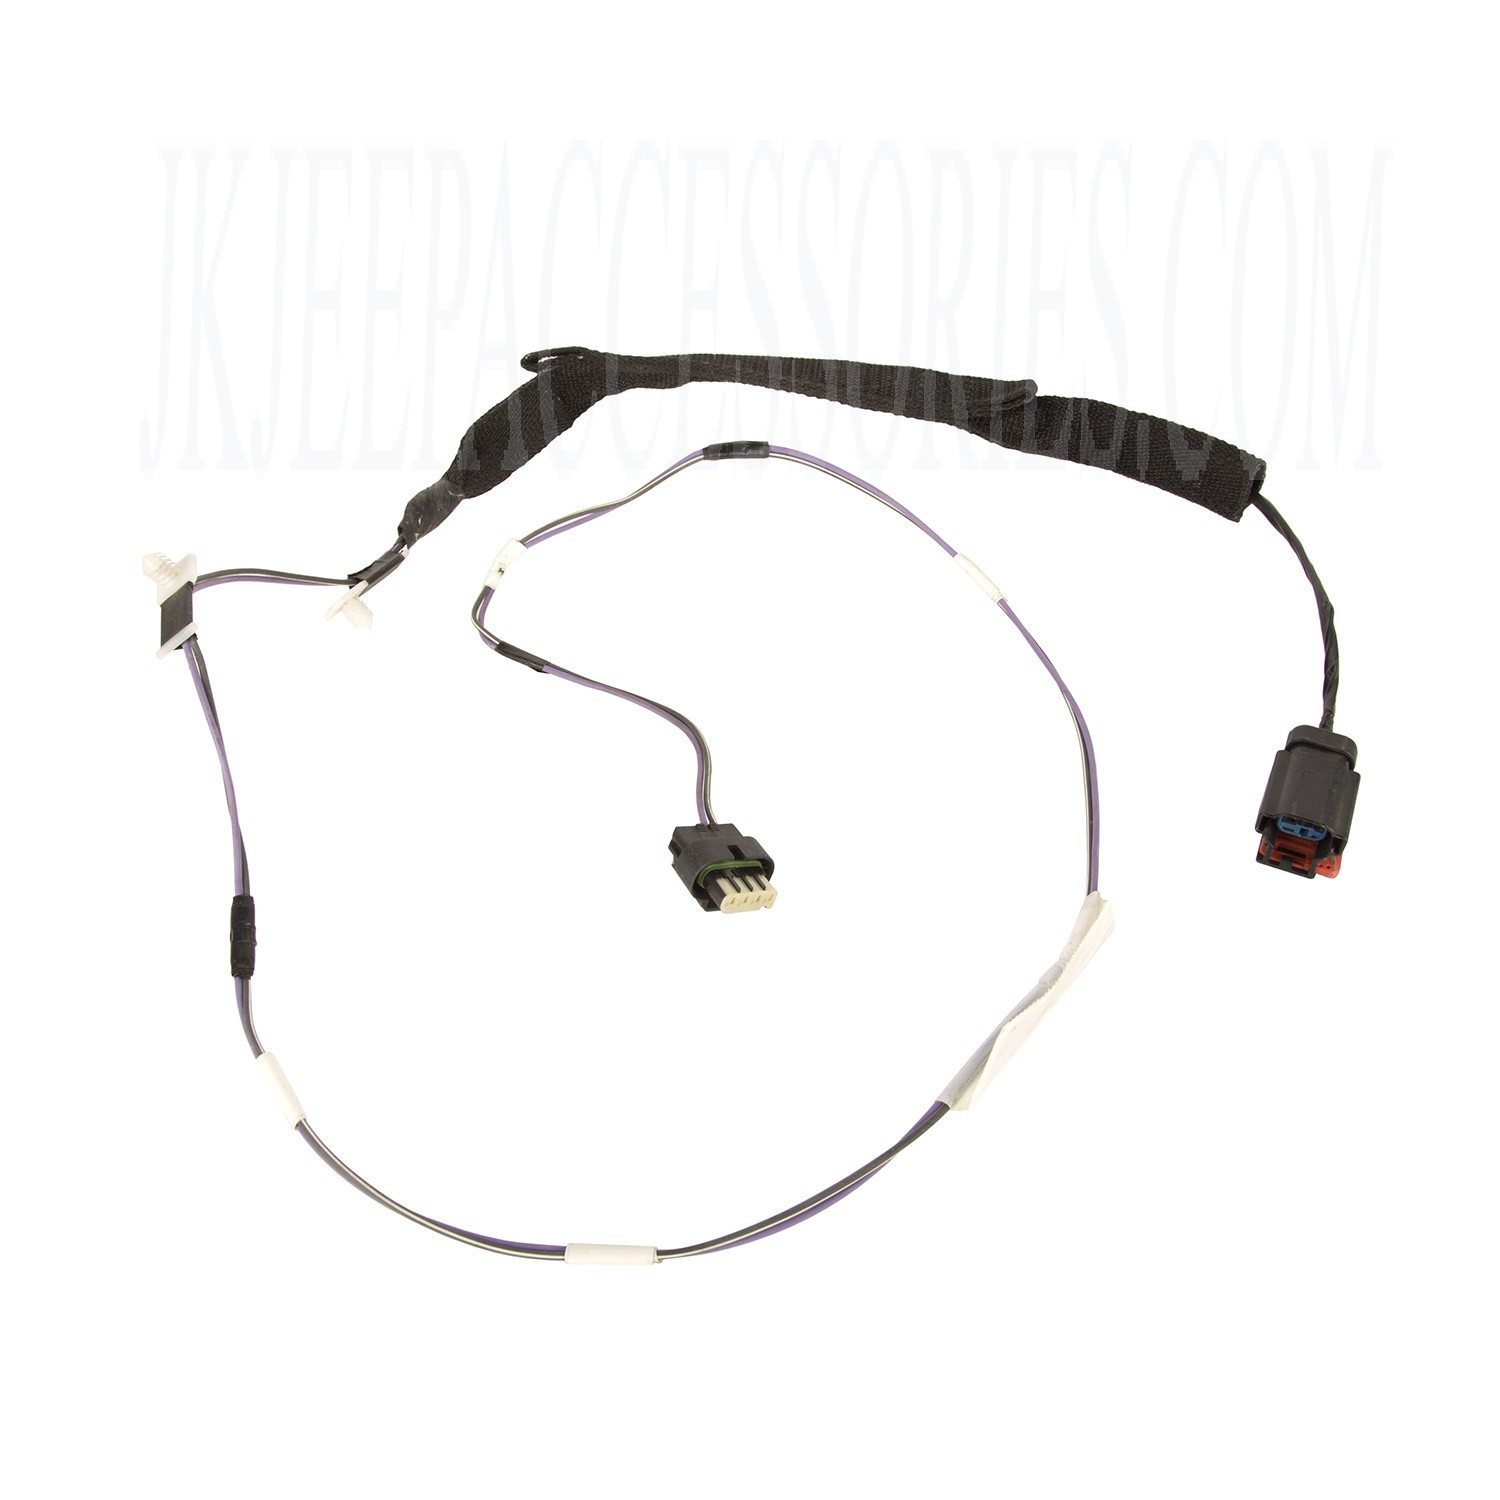 this front left door wiring harness from omix